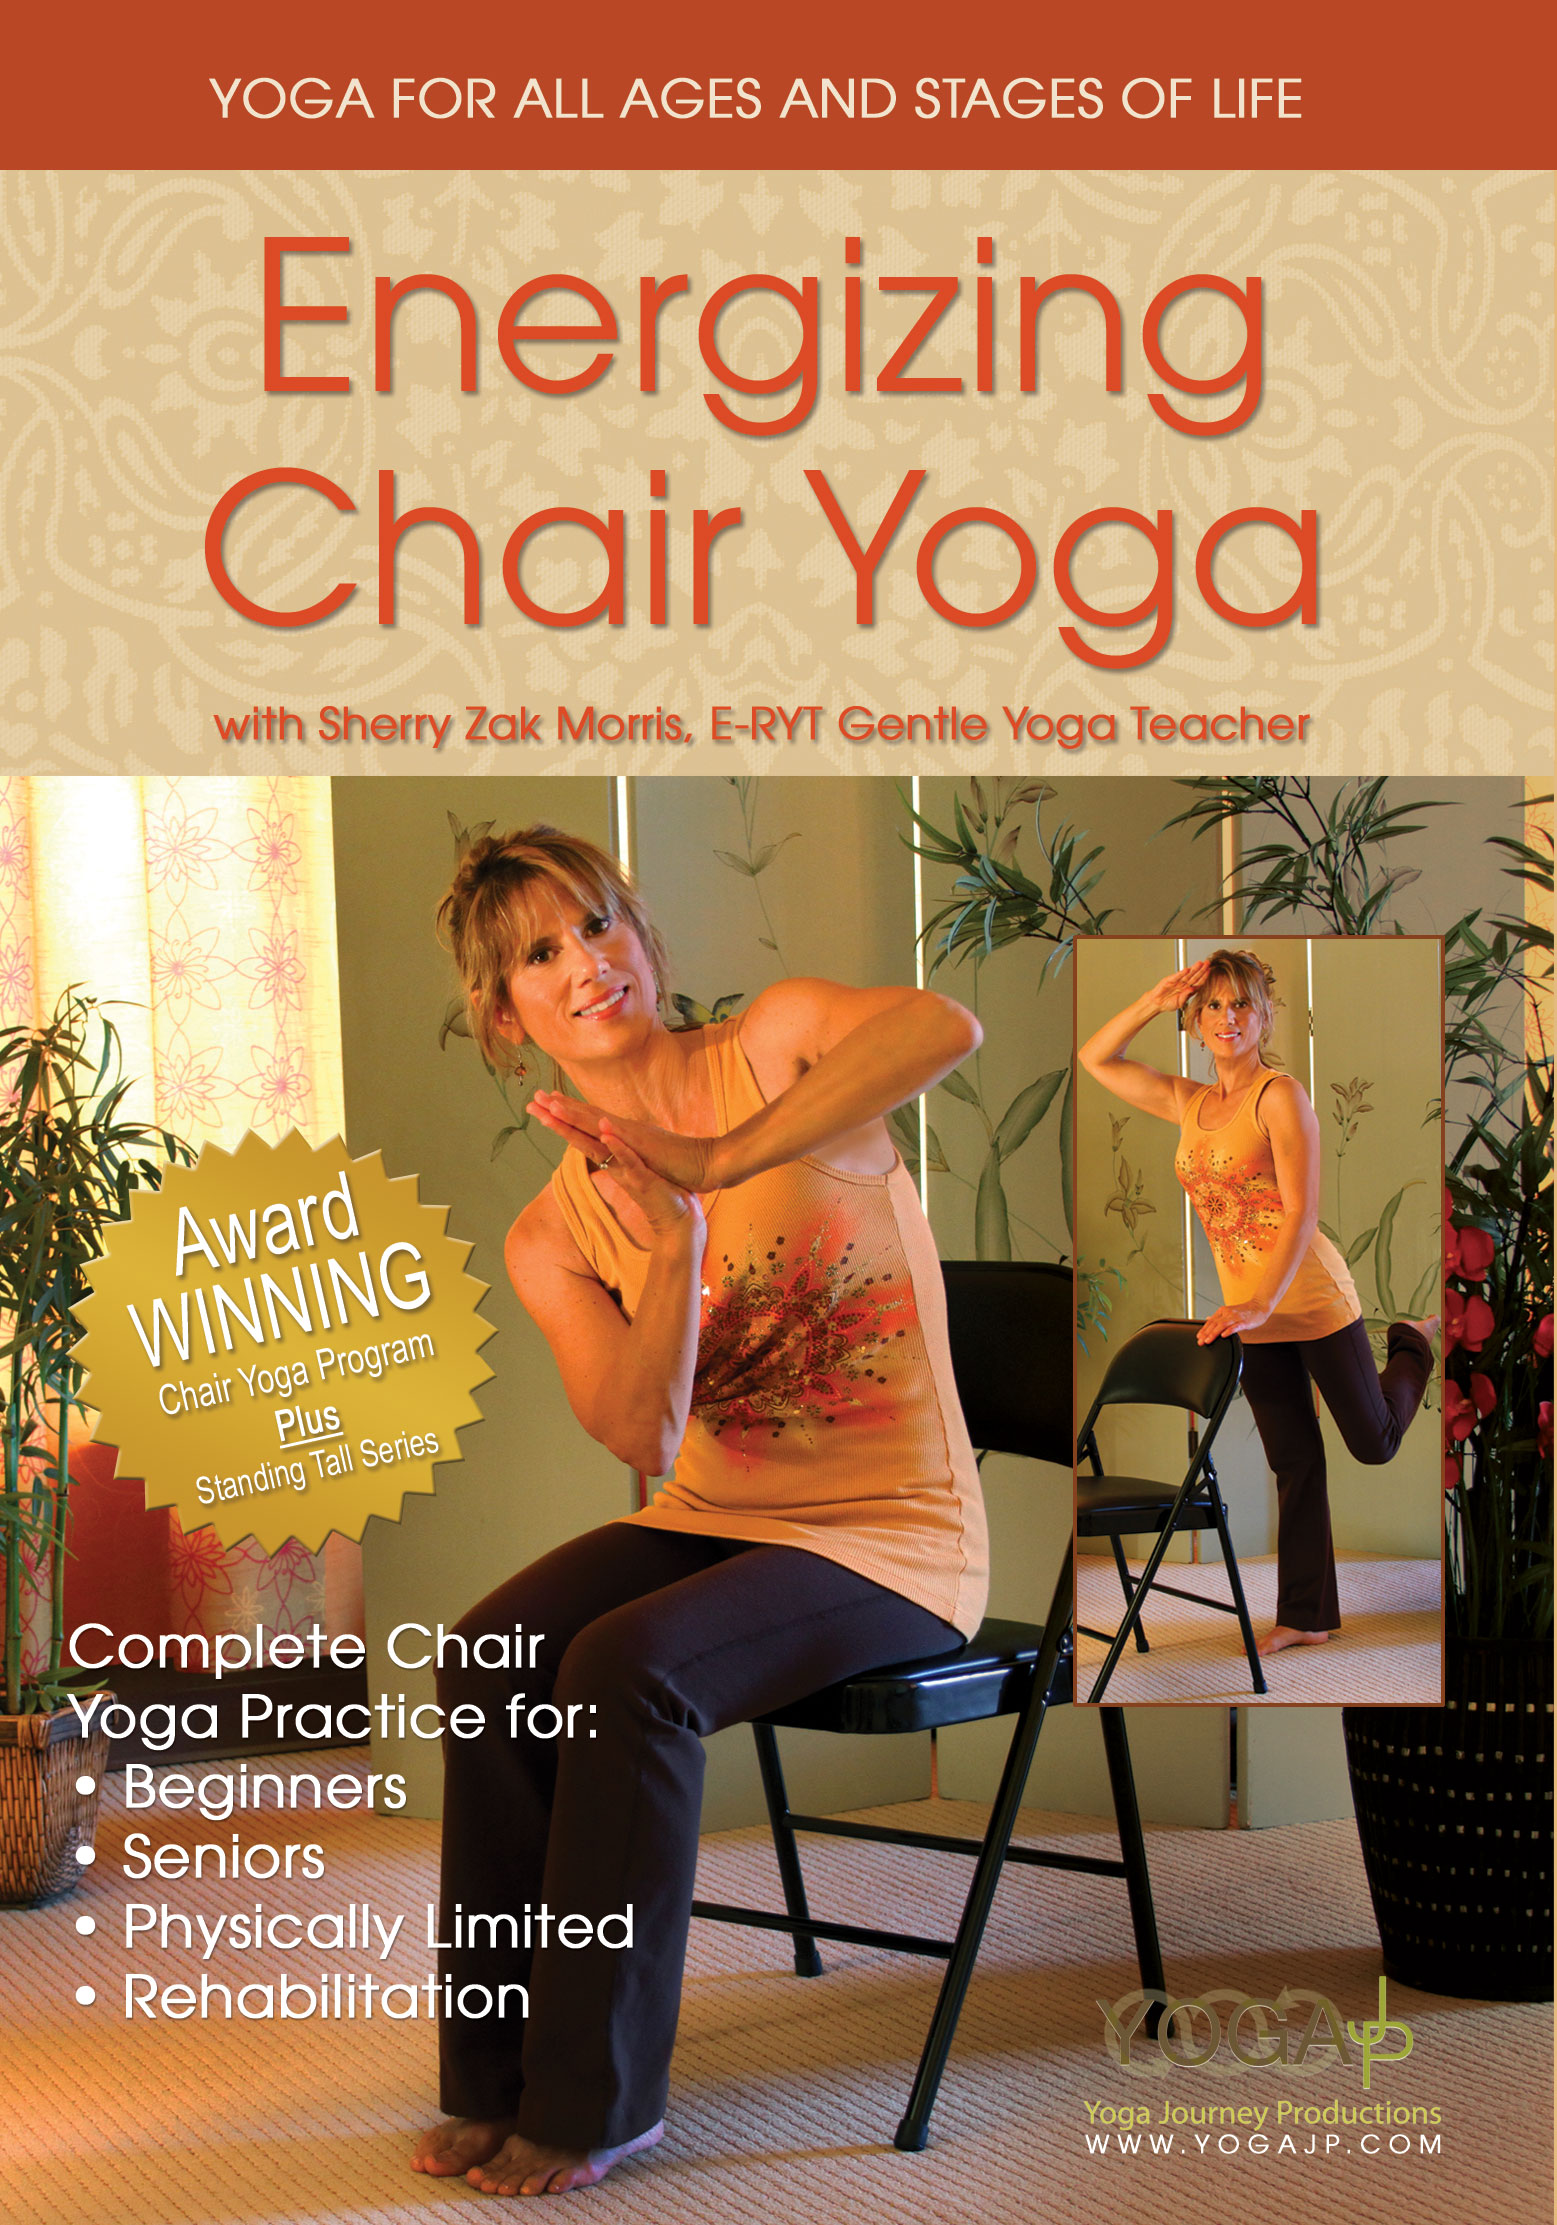 chair yoga for seniors cover hire richmond energizing dvd with sherry zak morris  yogajp